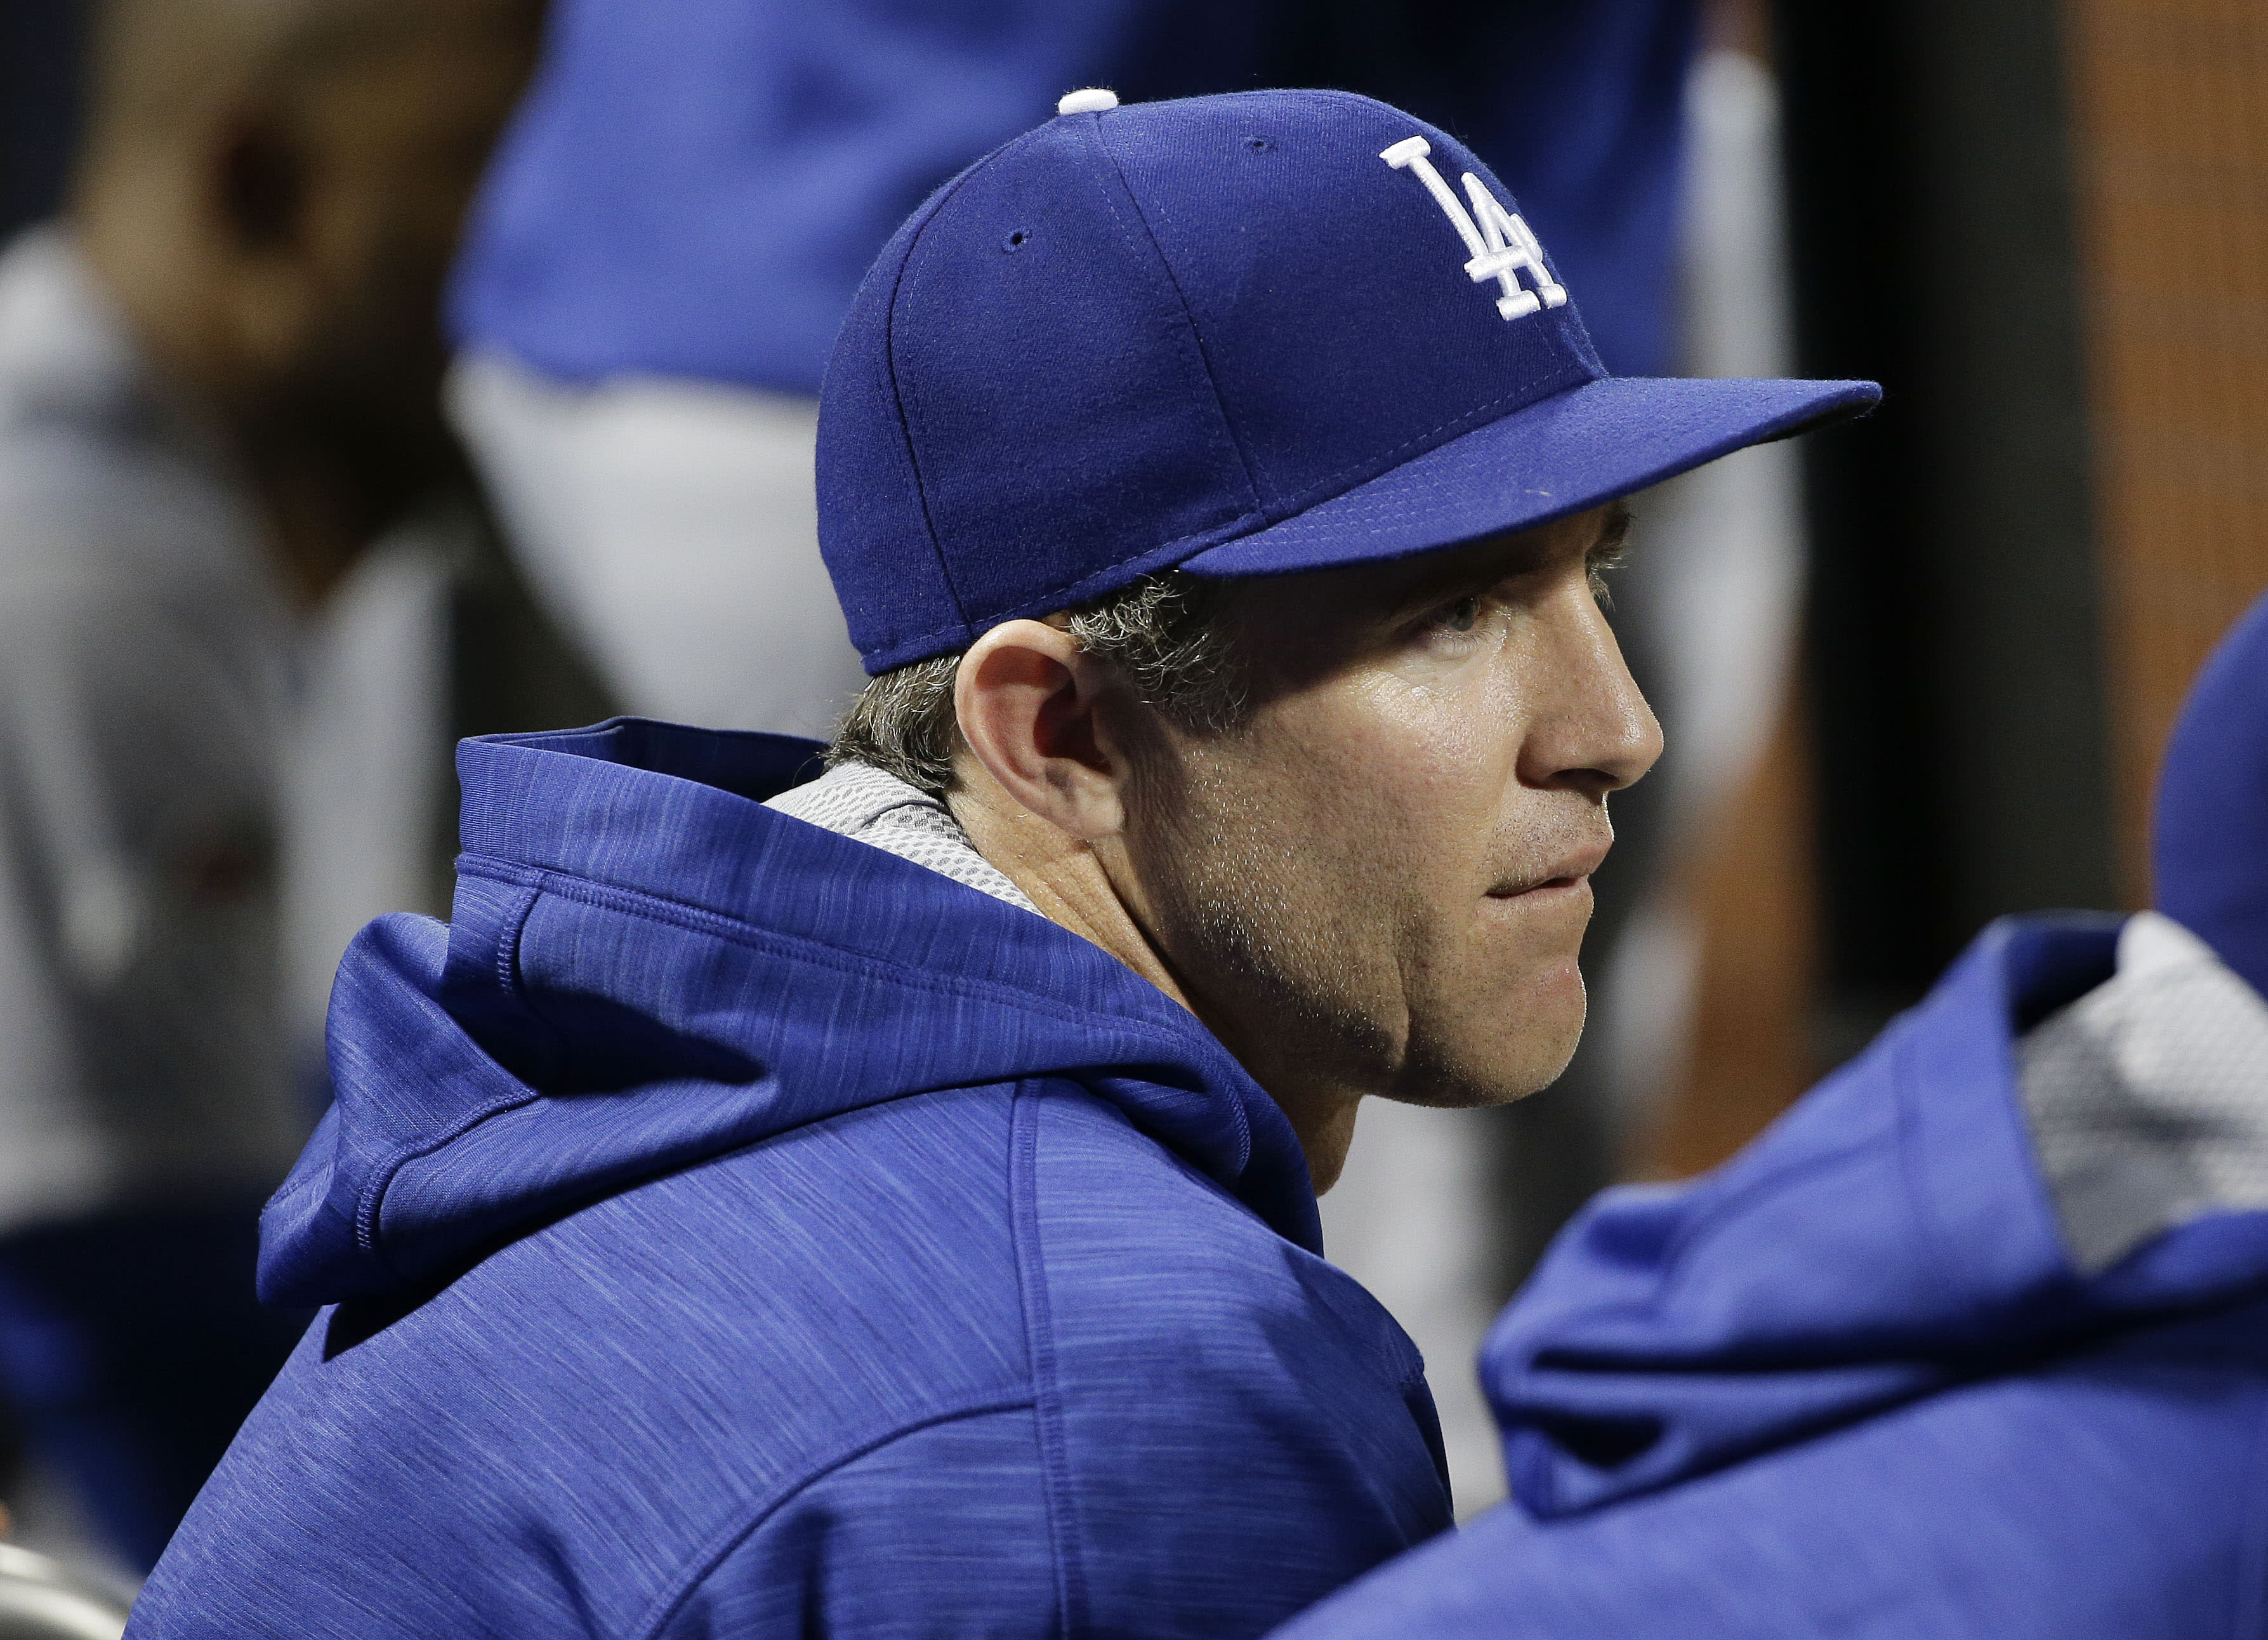 AP source: Utley's hearing scheduled for Monday